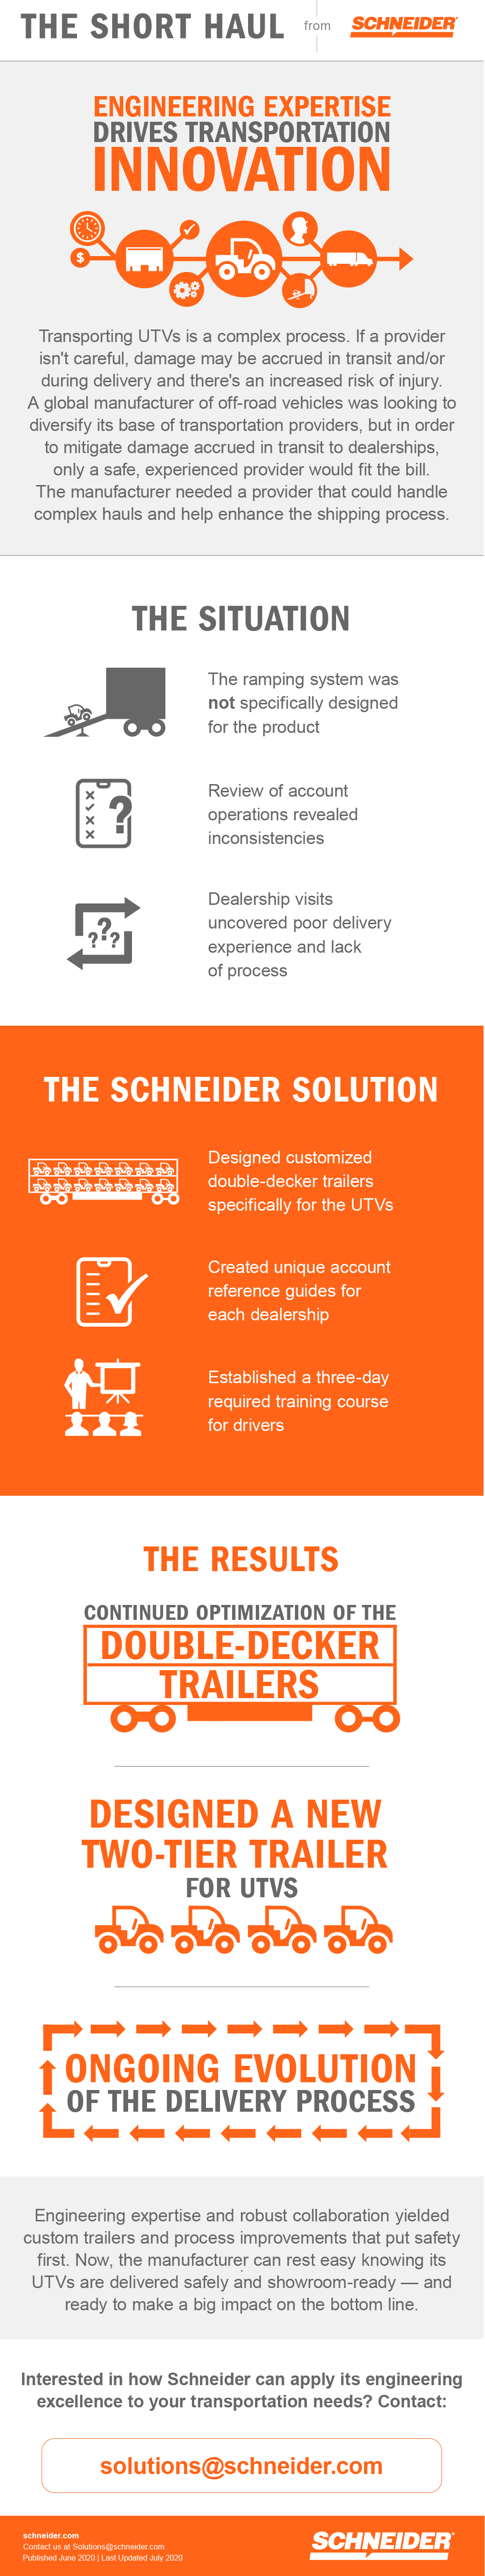 A infographic visually displaying how a global manufacturer was looking for a transportation provider that could handle complex hauls and help enhance the shipping process.